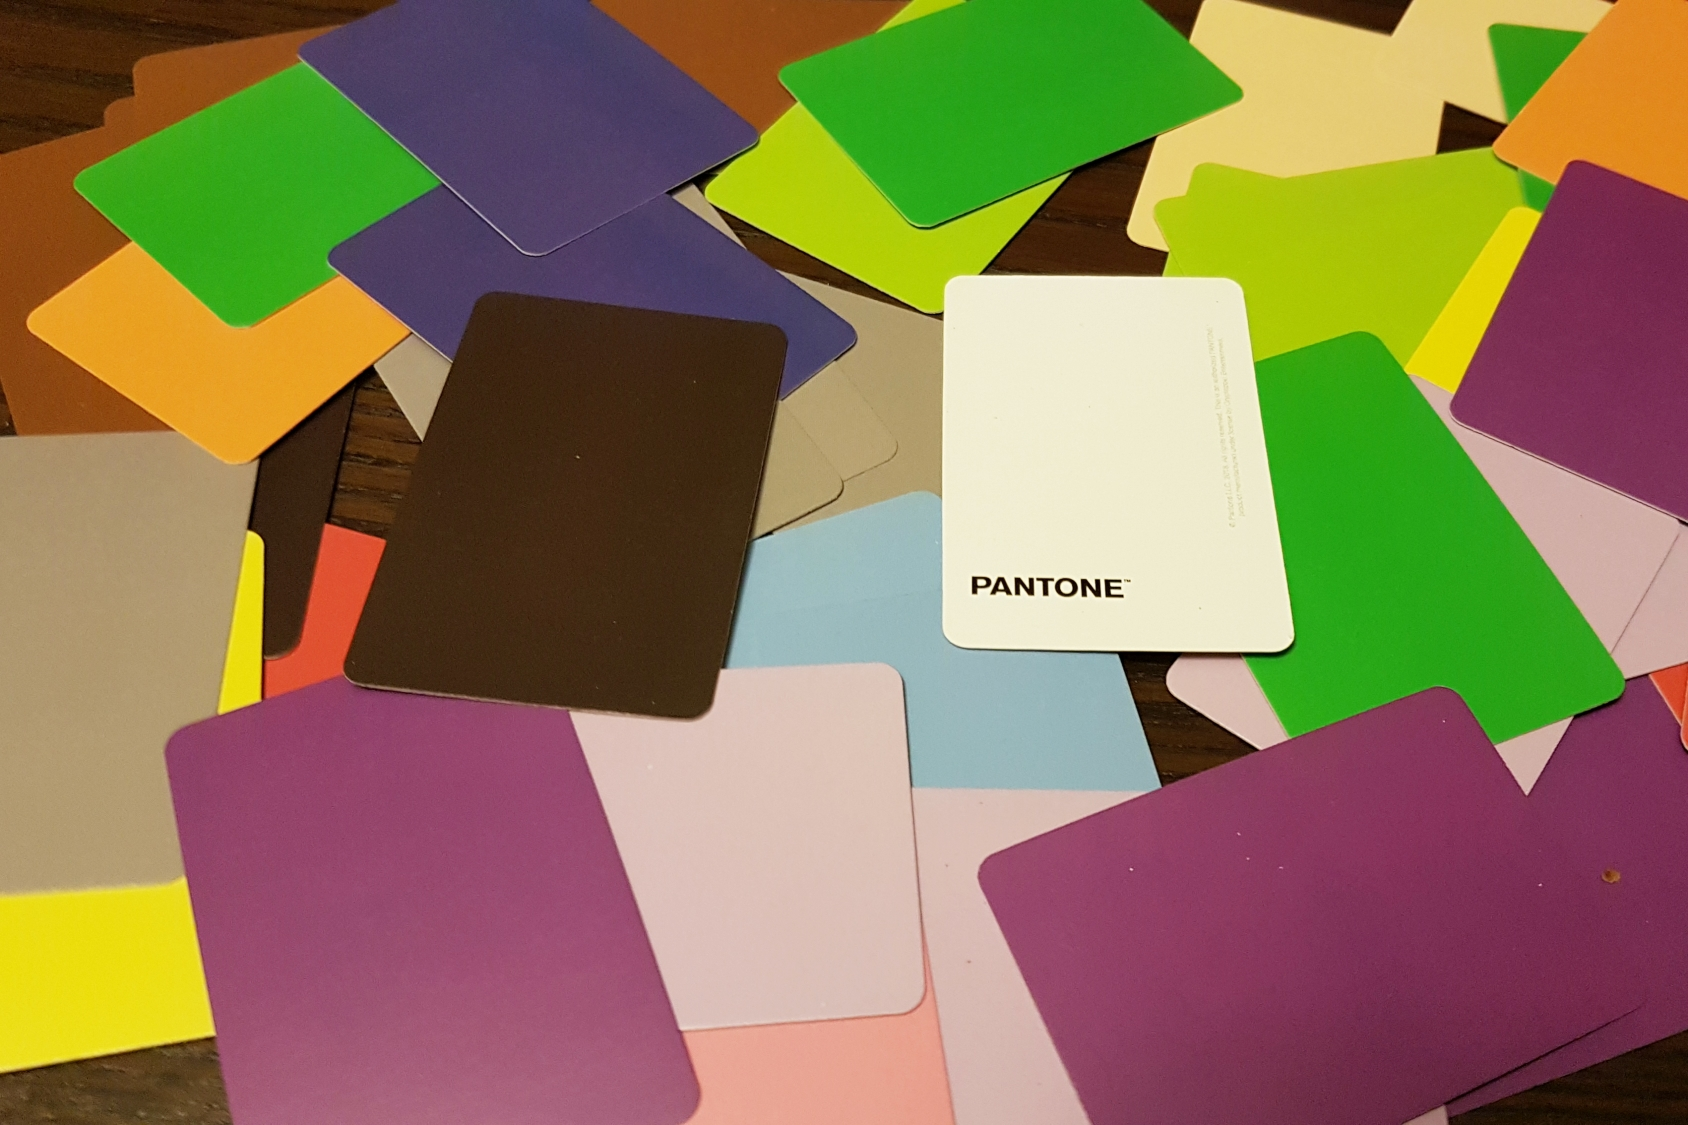 Pantone Matched - We can Pantone match the product or just match the logo print ensuring brand representation is precise